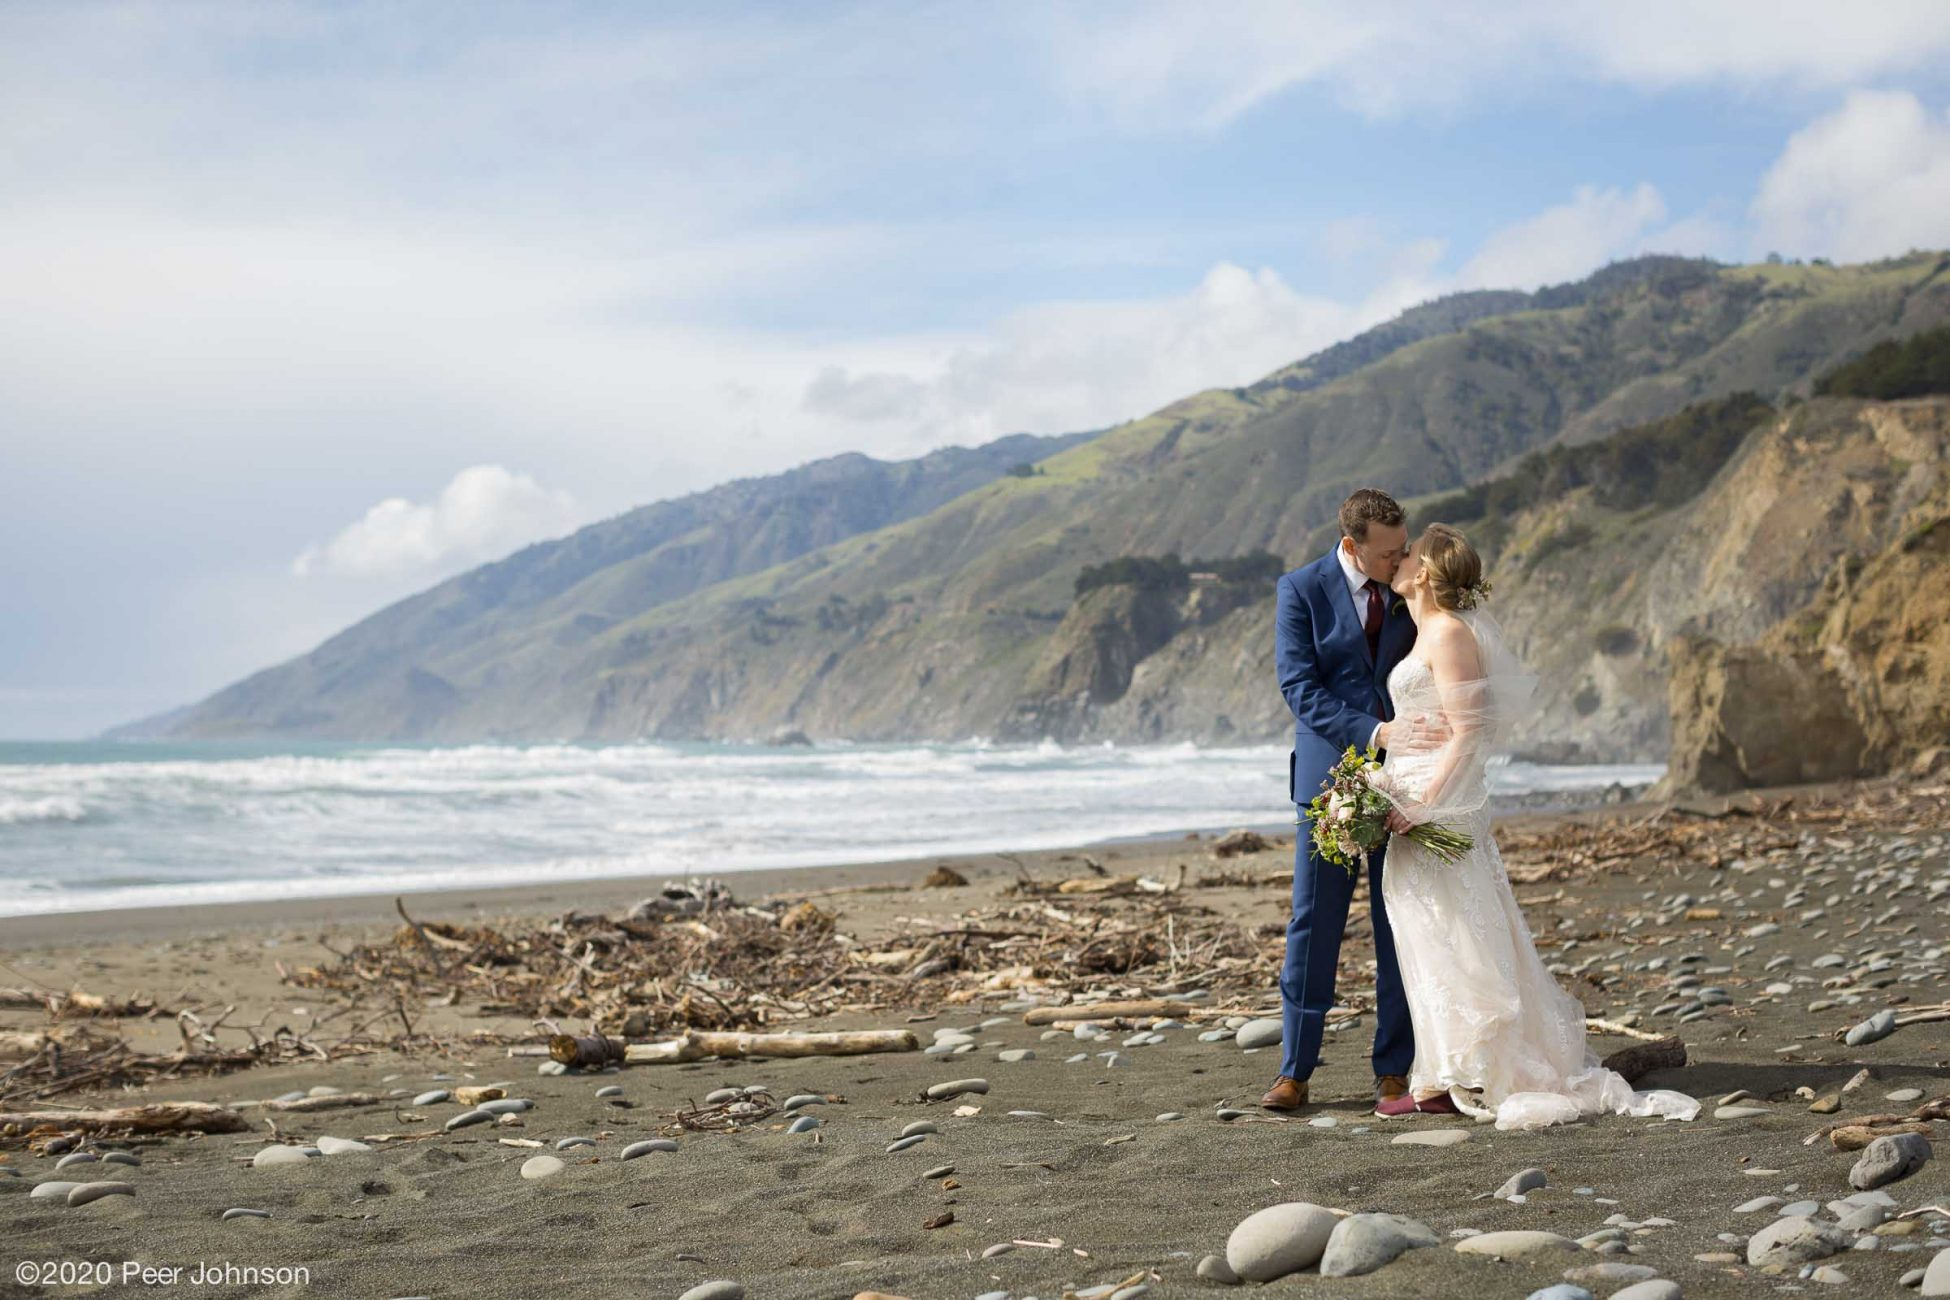 Weddings at Ragget Point